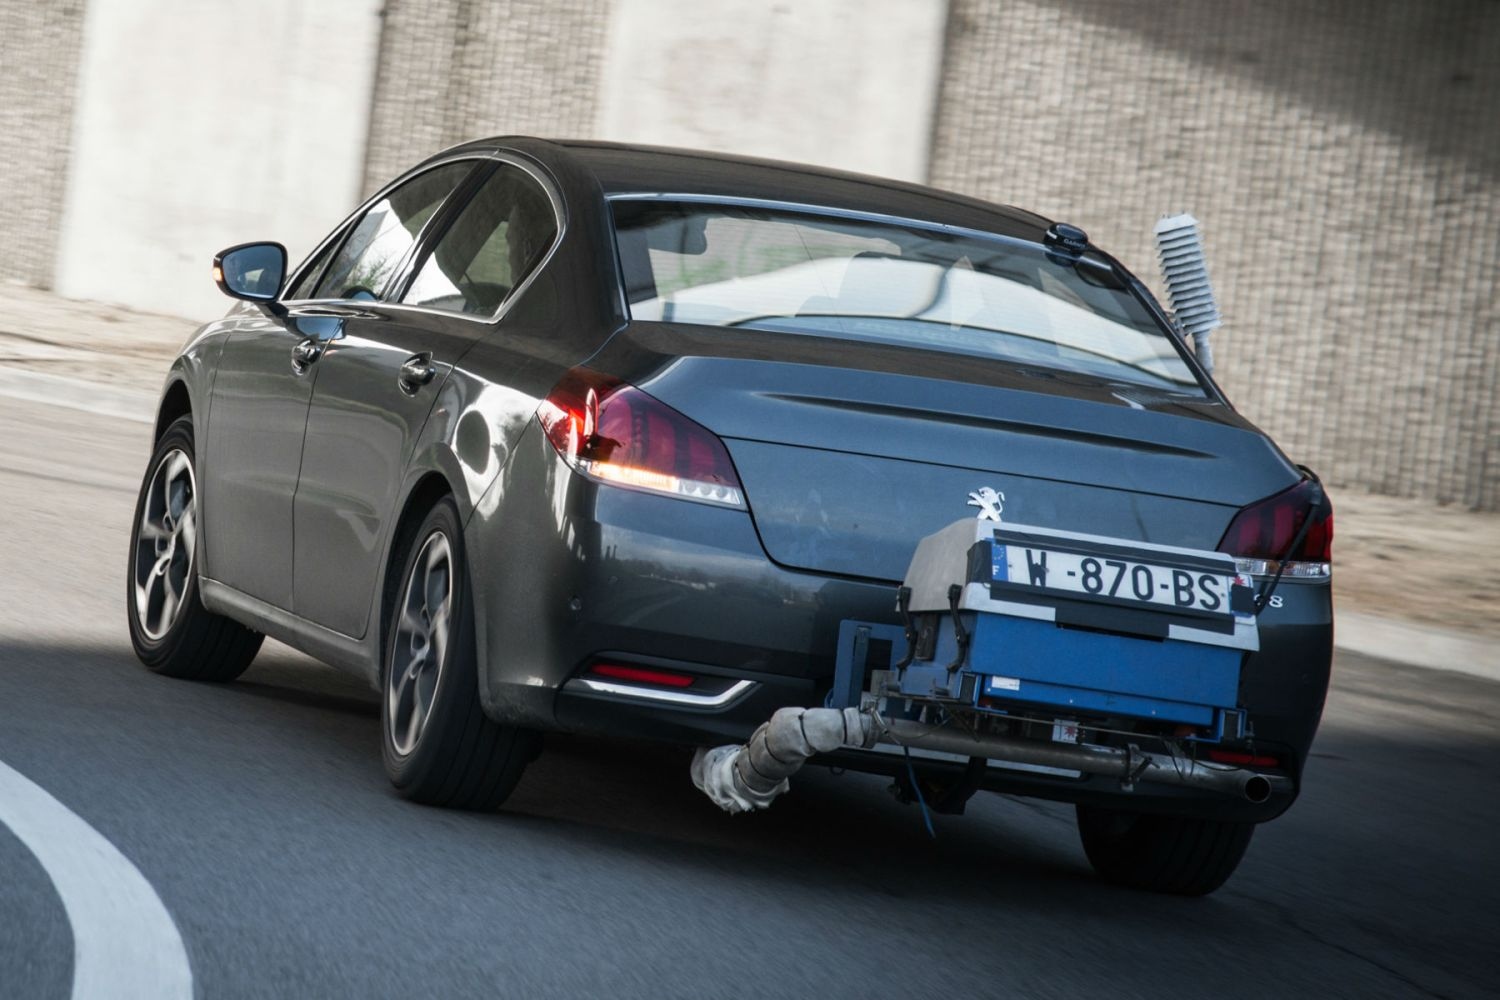 This is how Peugeot Citroen calculates real-world fuel economy